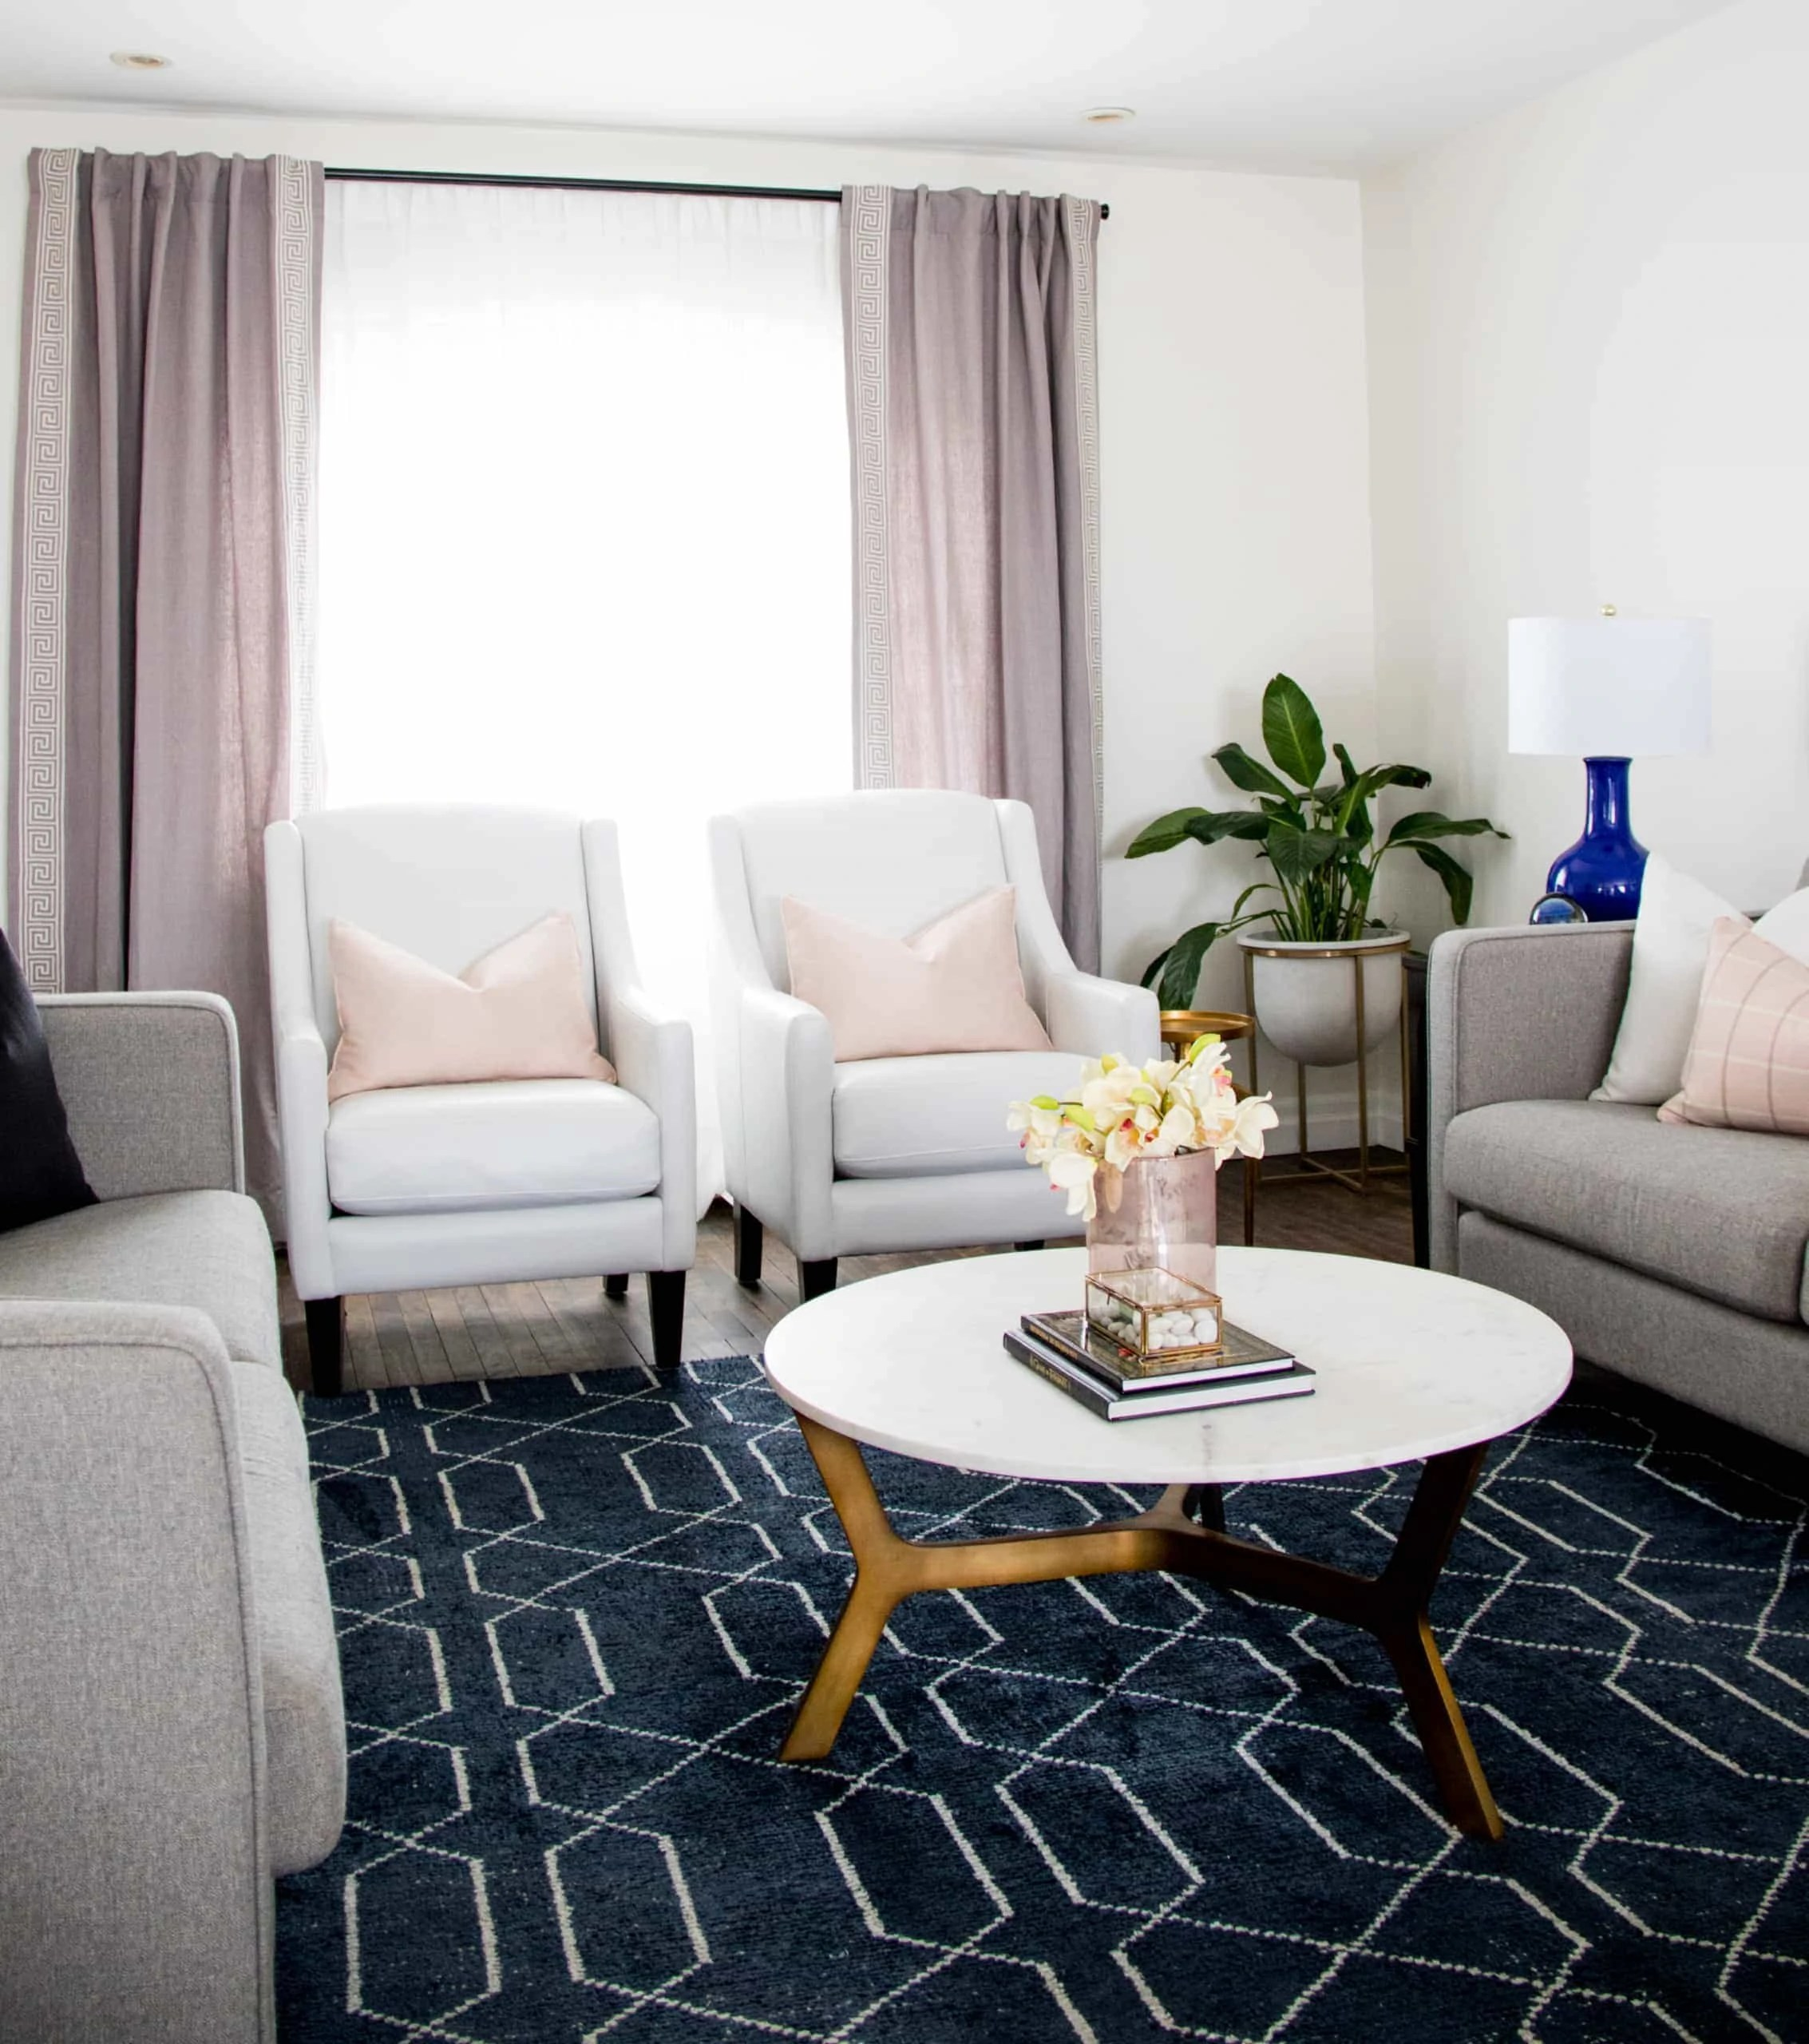 Bright living room with a focus on two white chars against a window